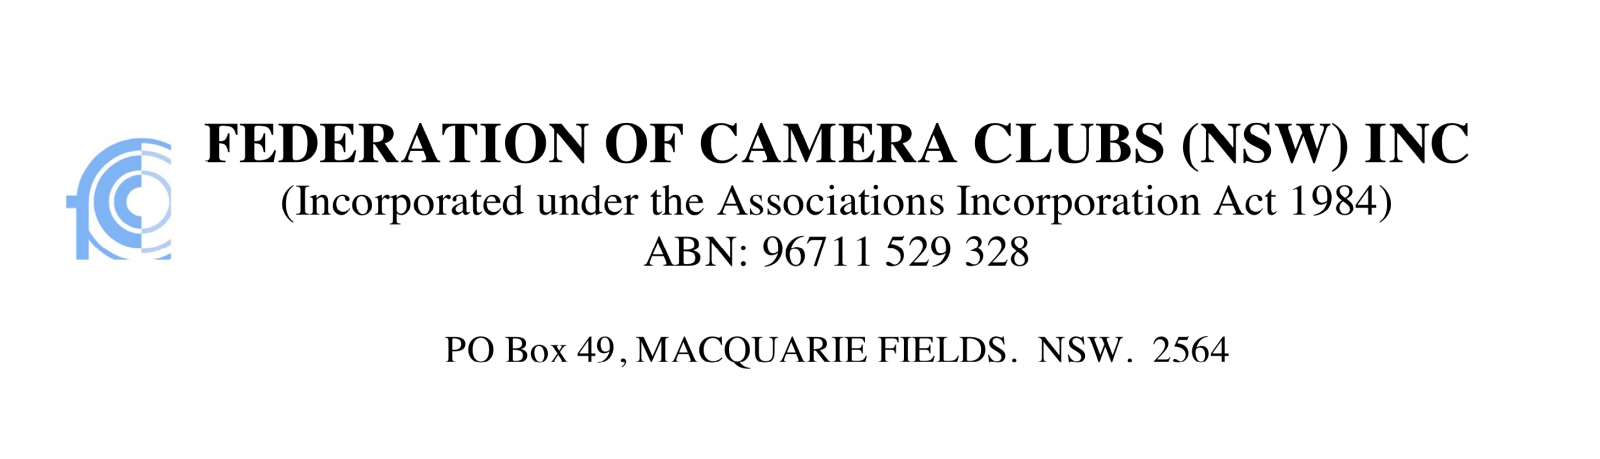 Federation of Camera Clubs (NSW) Inc.